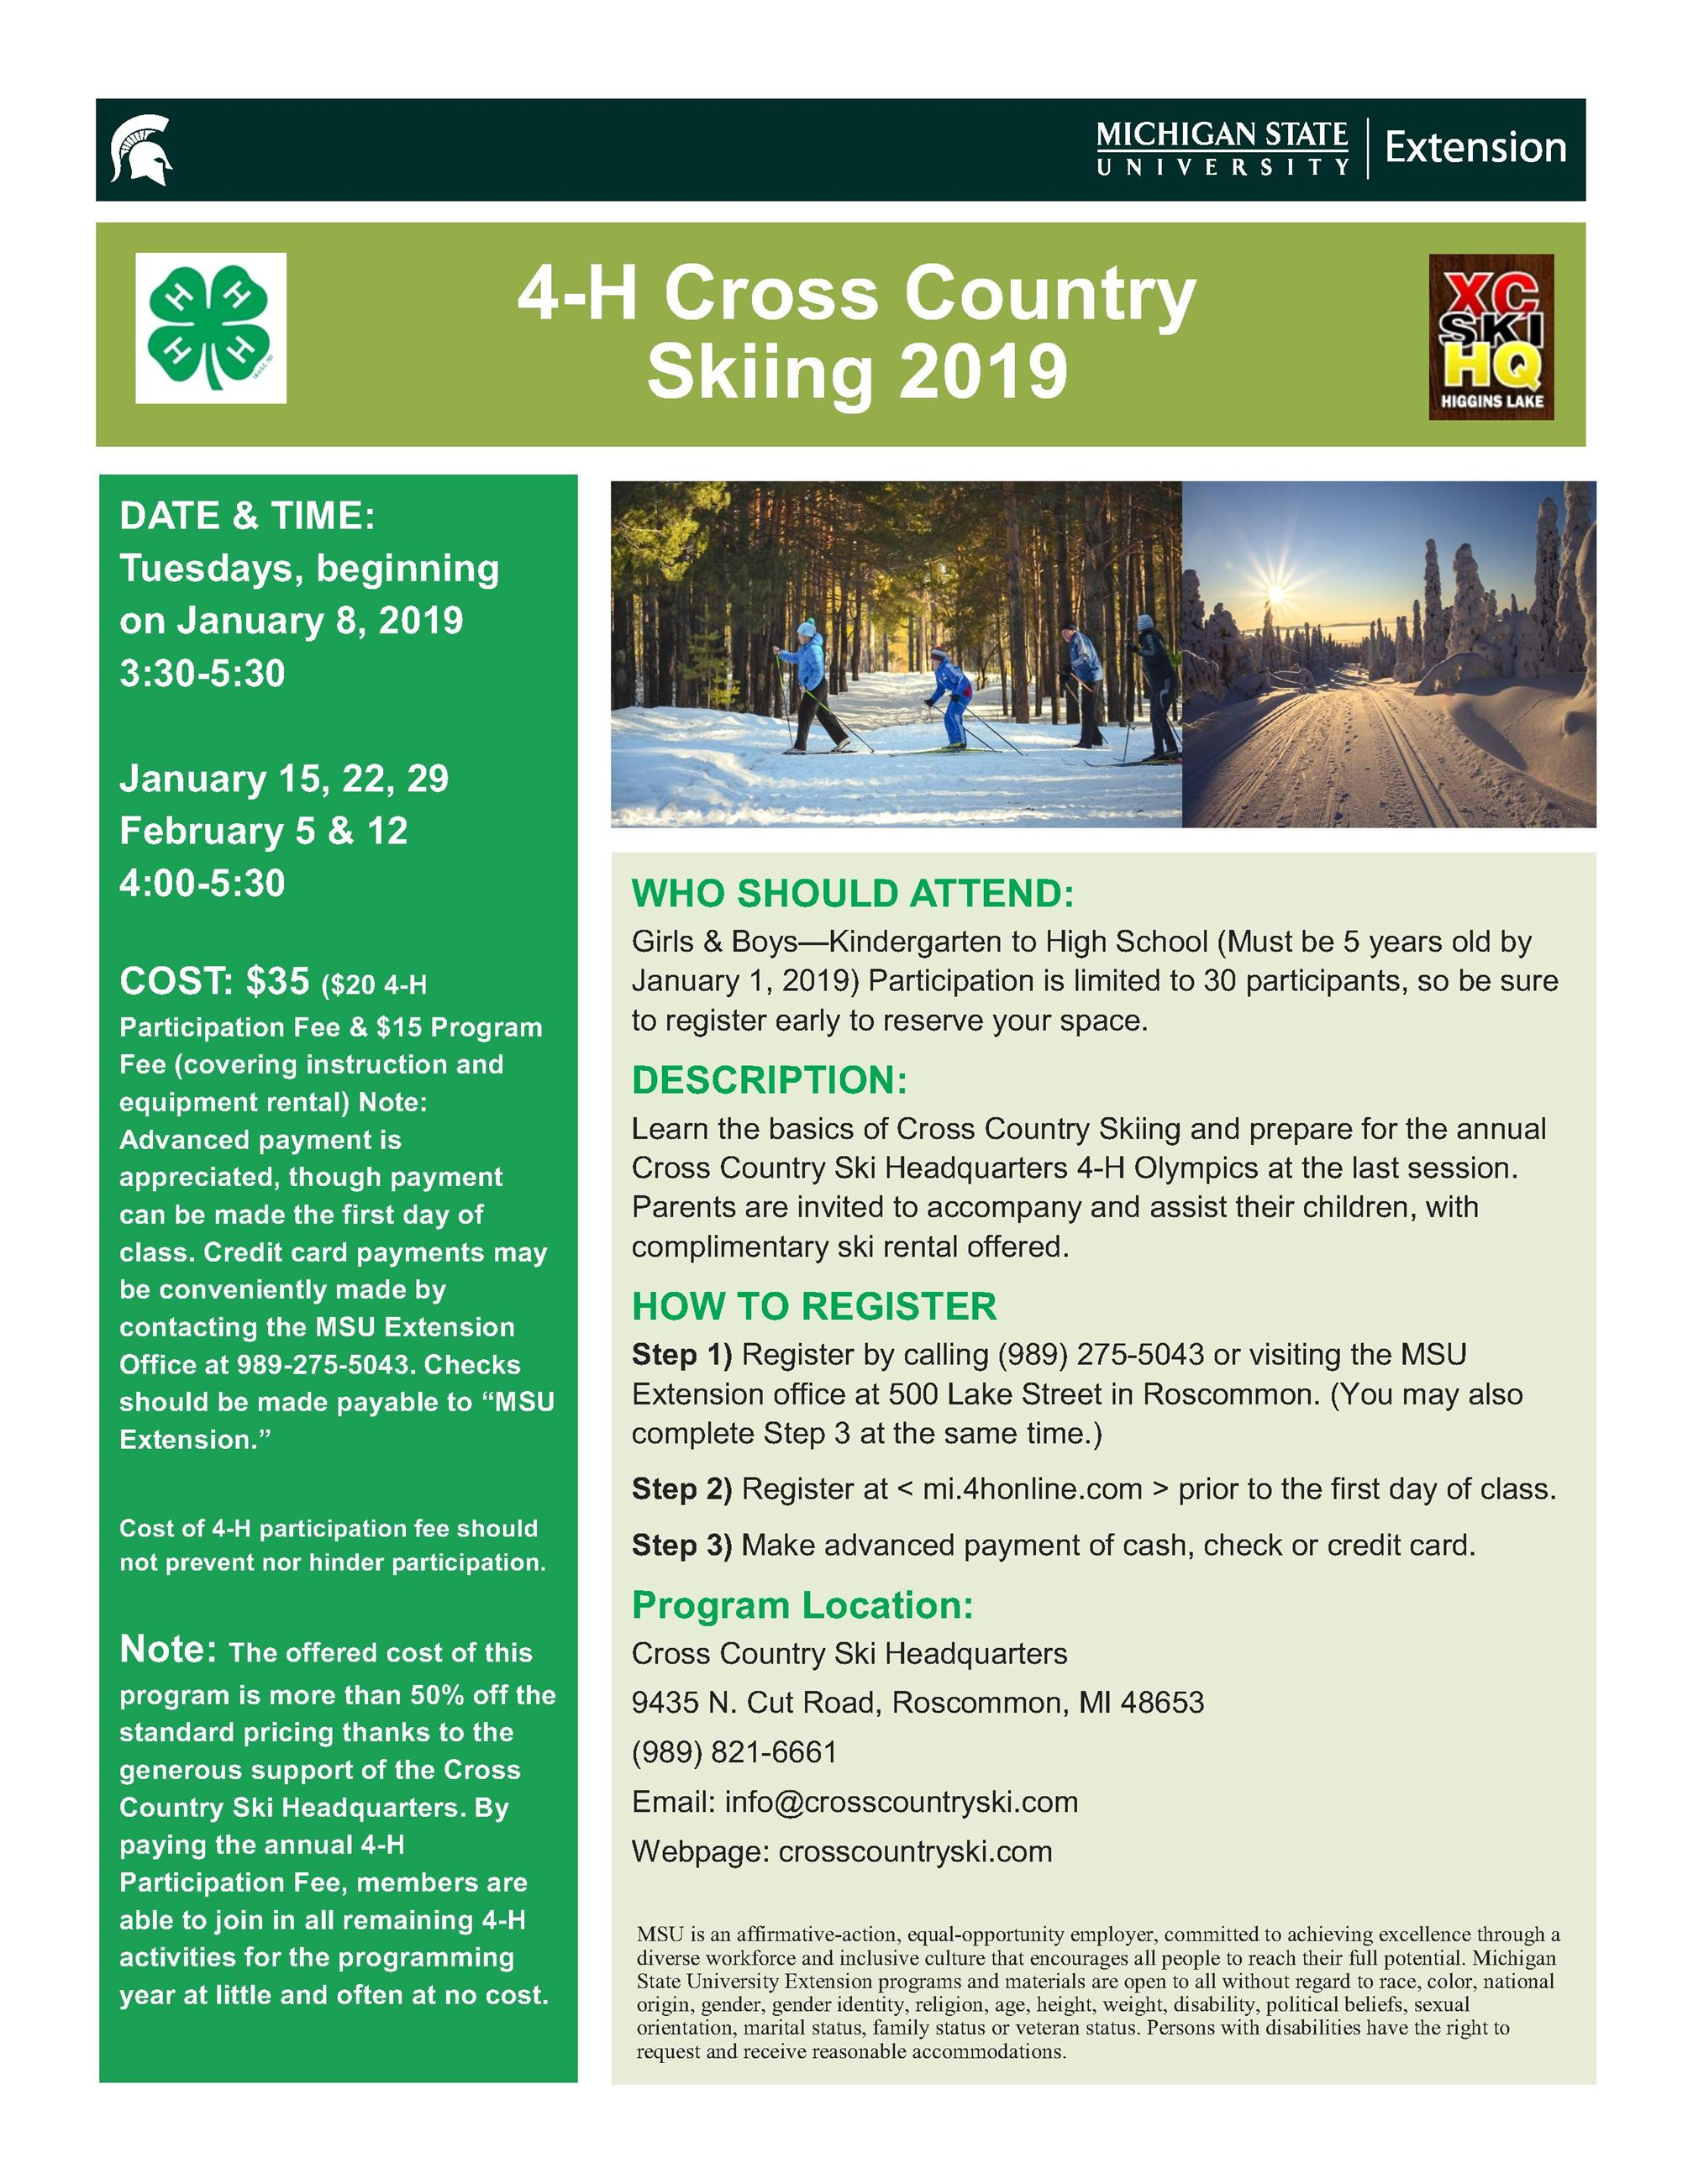 4-H Cross Country Ski Flyer 2019